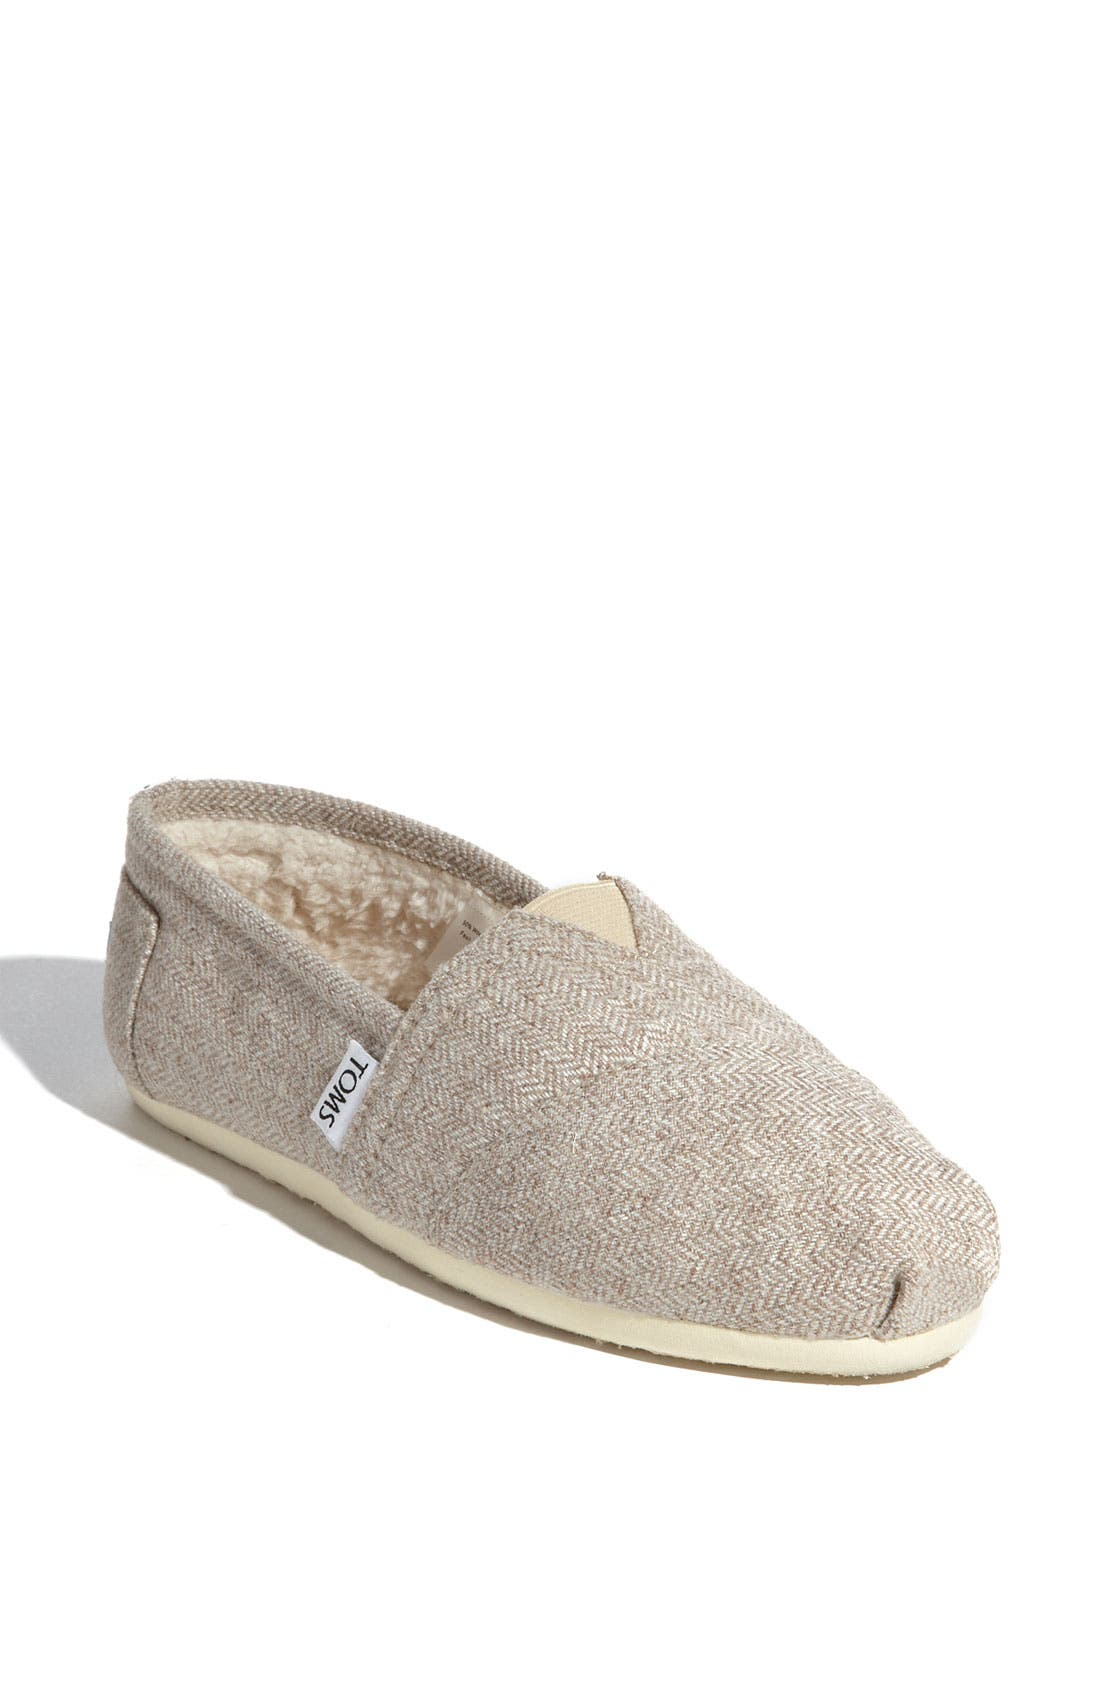 Main Image - TOMS Herringbone Fleece Slip-On (Women) (Exclusive)